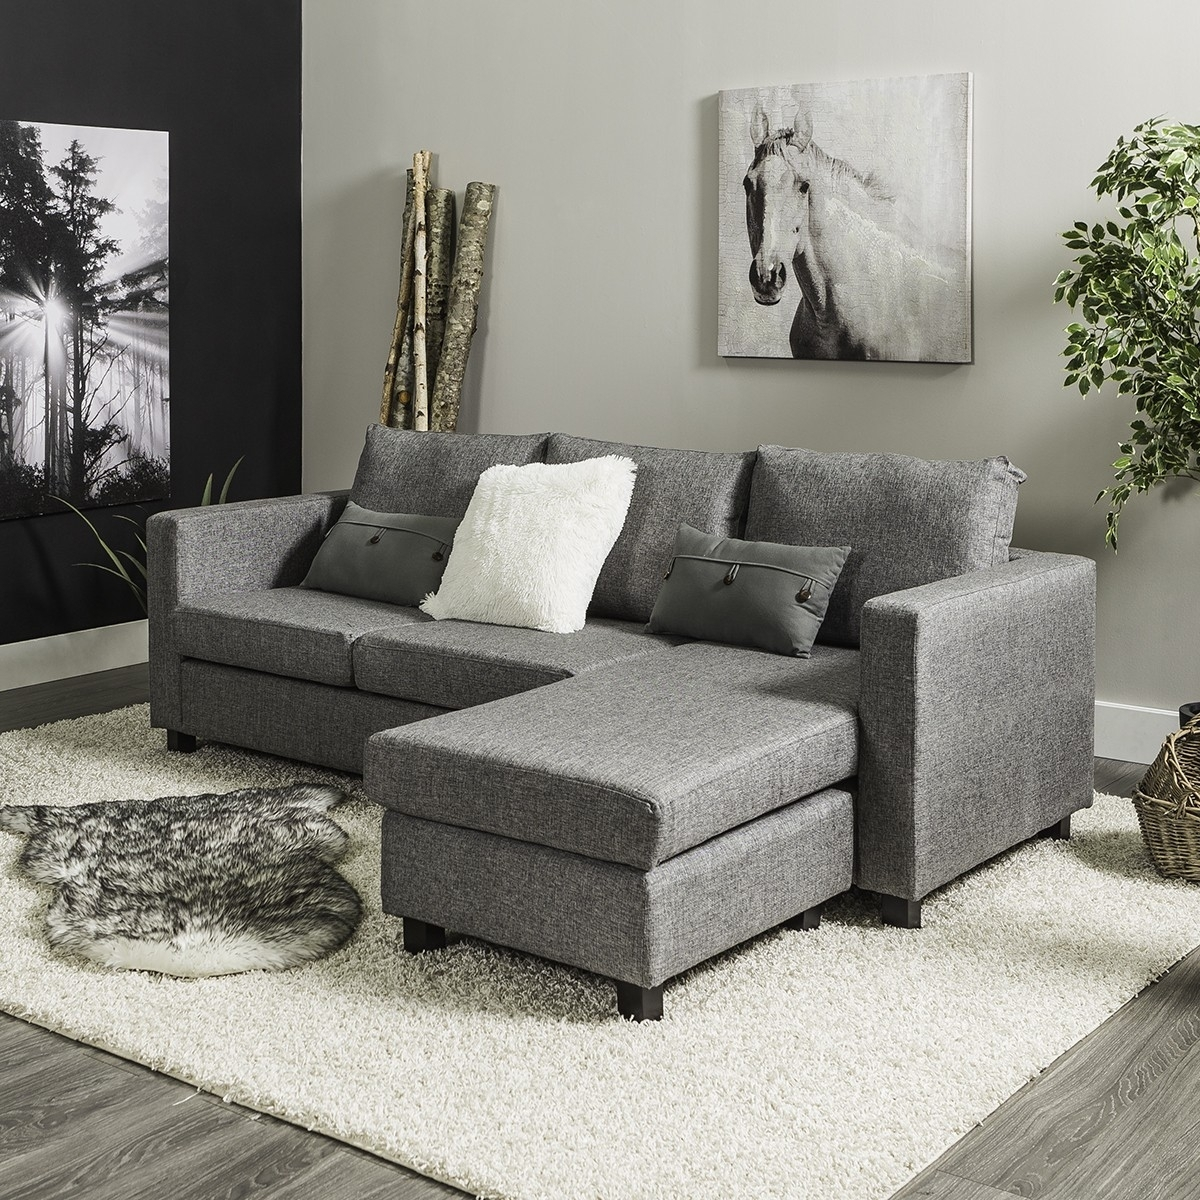 Casa Corner Sofa (Grey) for Jysk Sectional Sofas (Image 2 of 10)